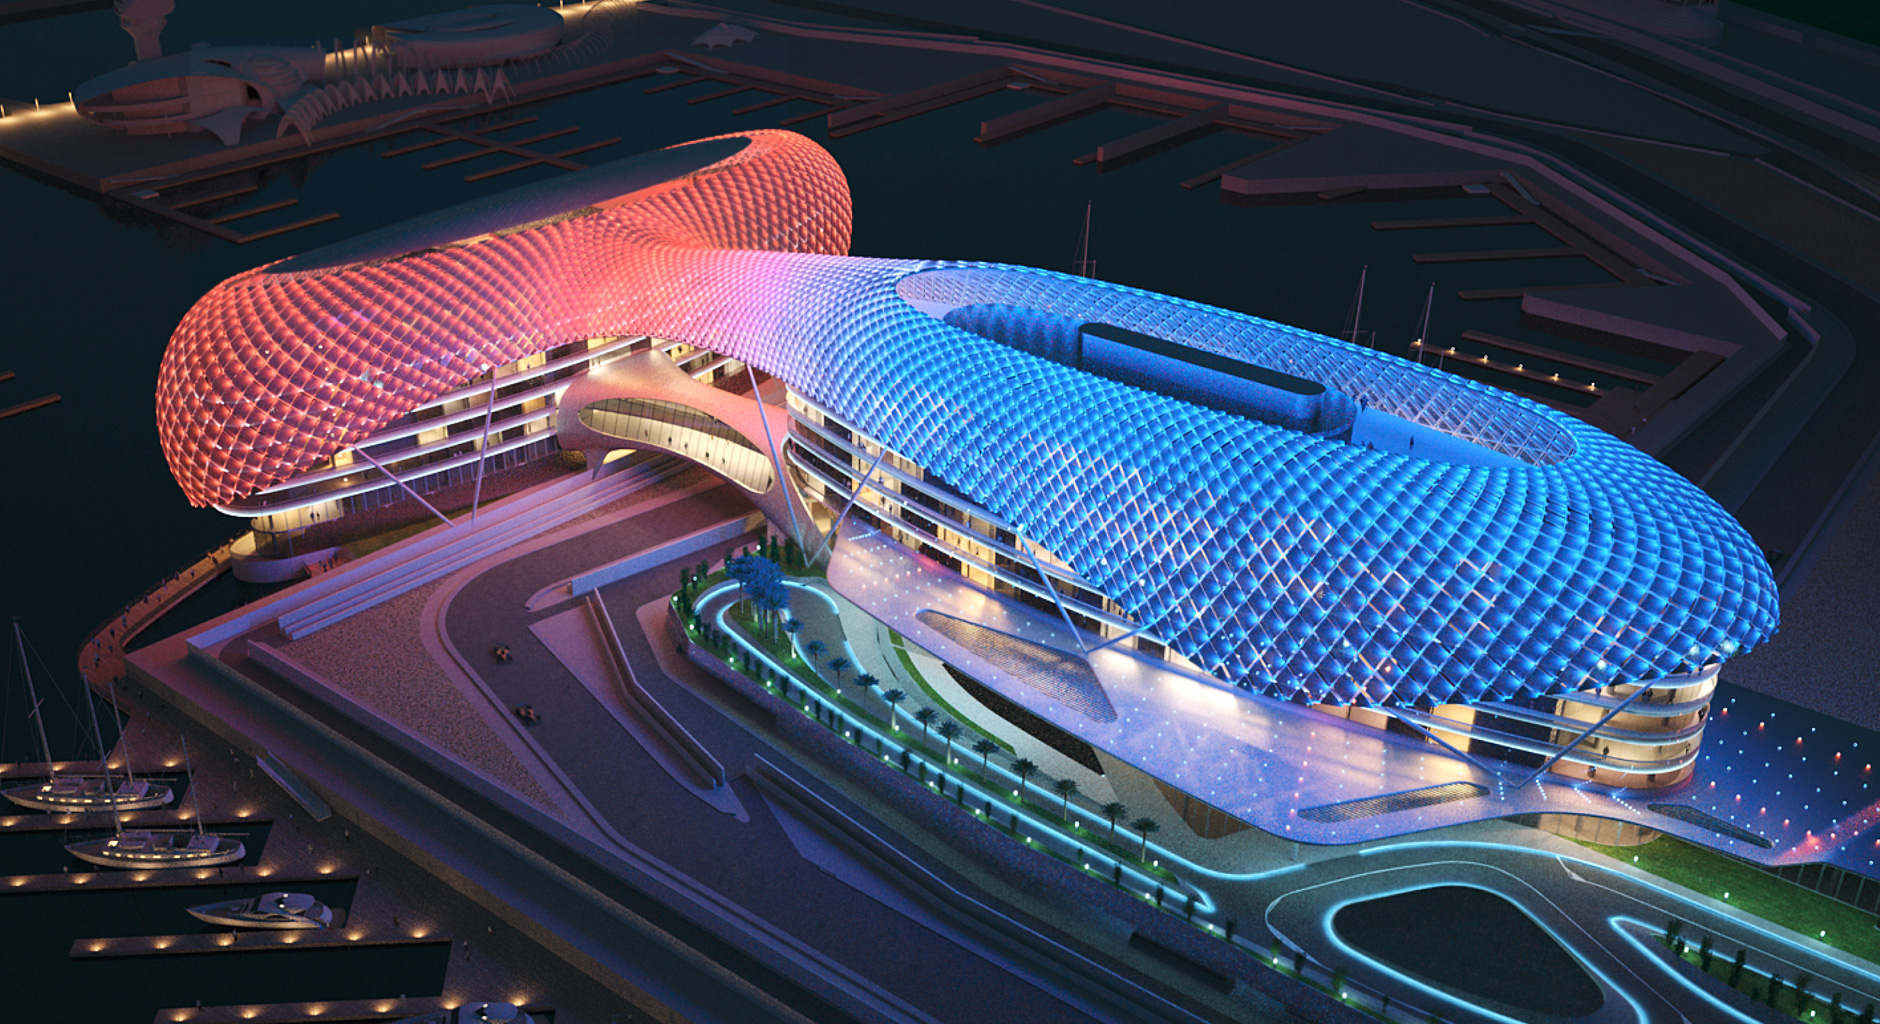 futuristic shape in Amazing Construction Built Over F1 Racing Track-Yas Viceroy Abu Dhabi Hotel by Asymptote Architecture Homesthetics